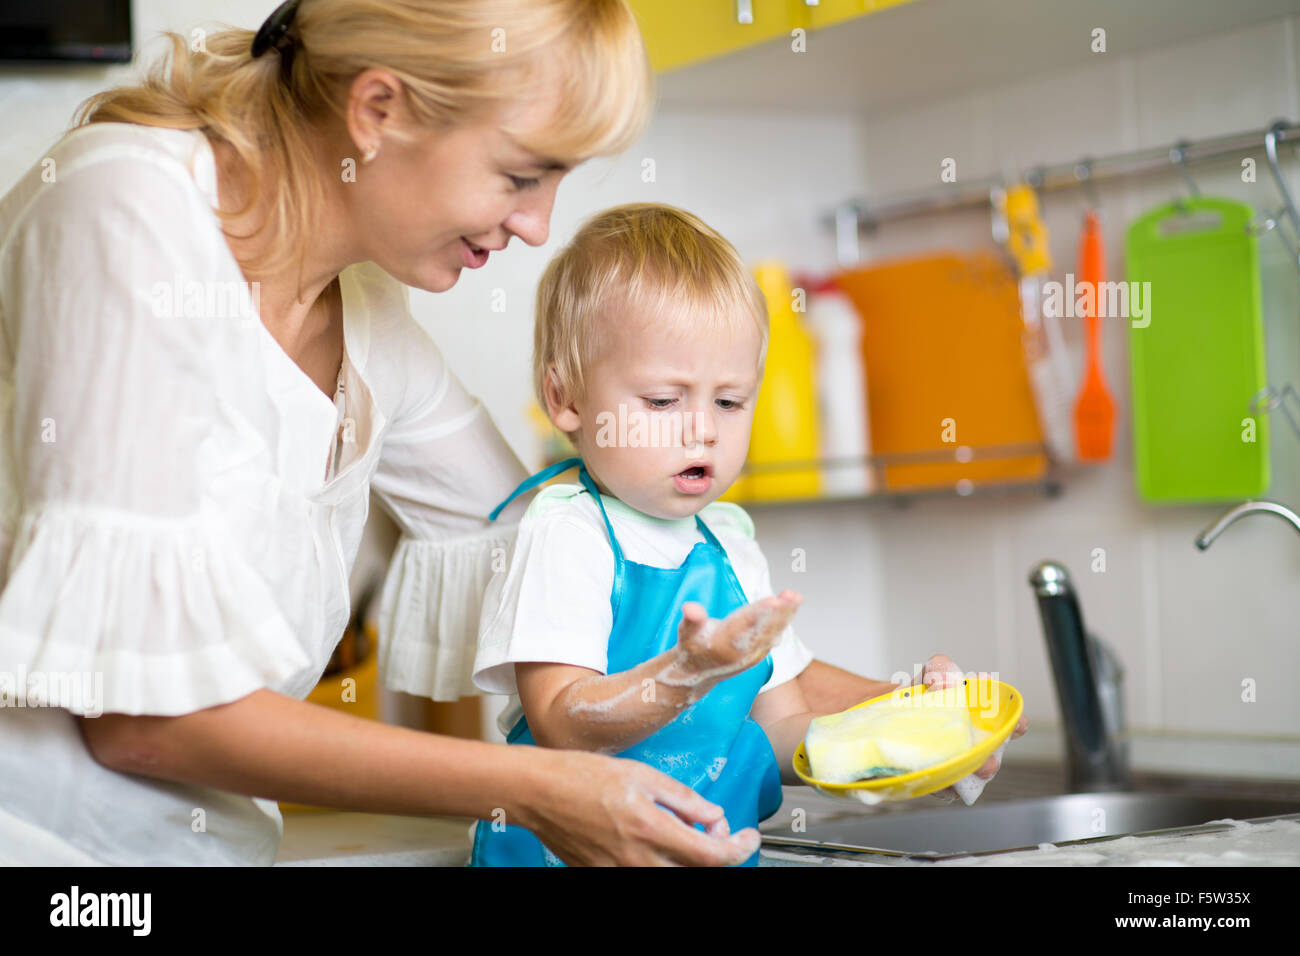 Mother And Son Cleaning Dishes Together - Stock Image